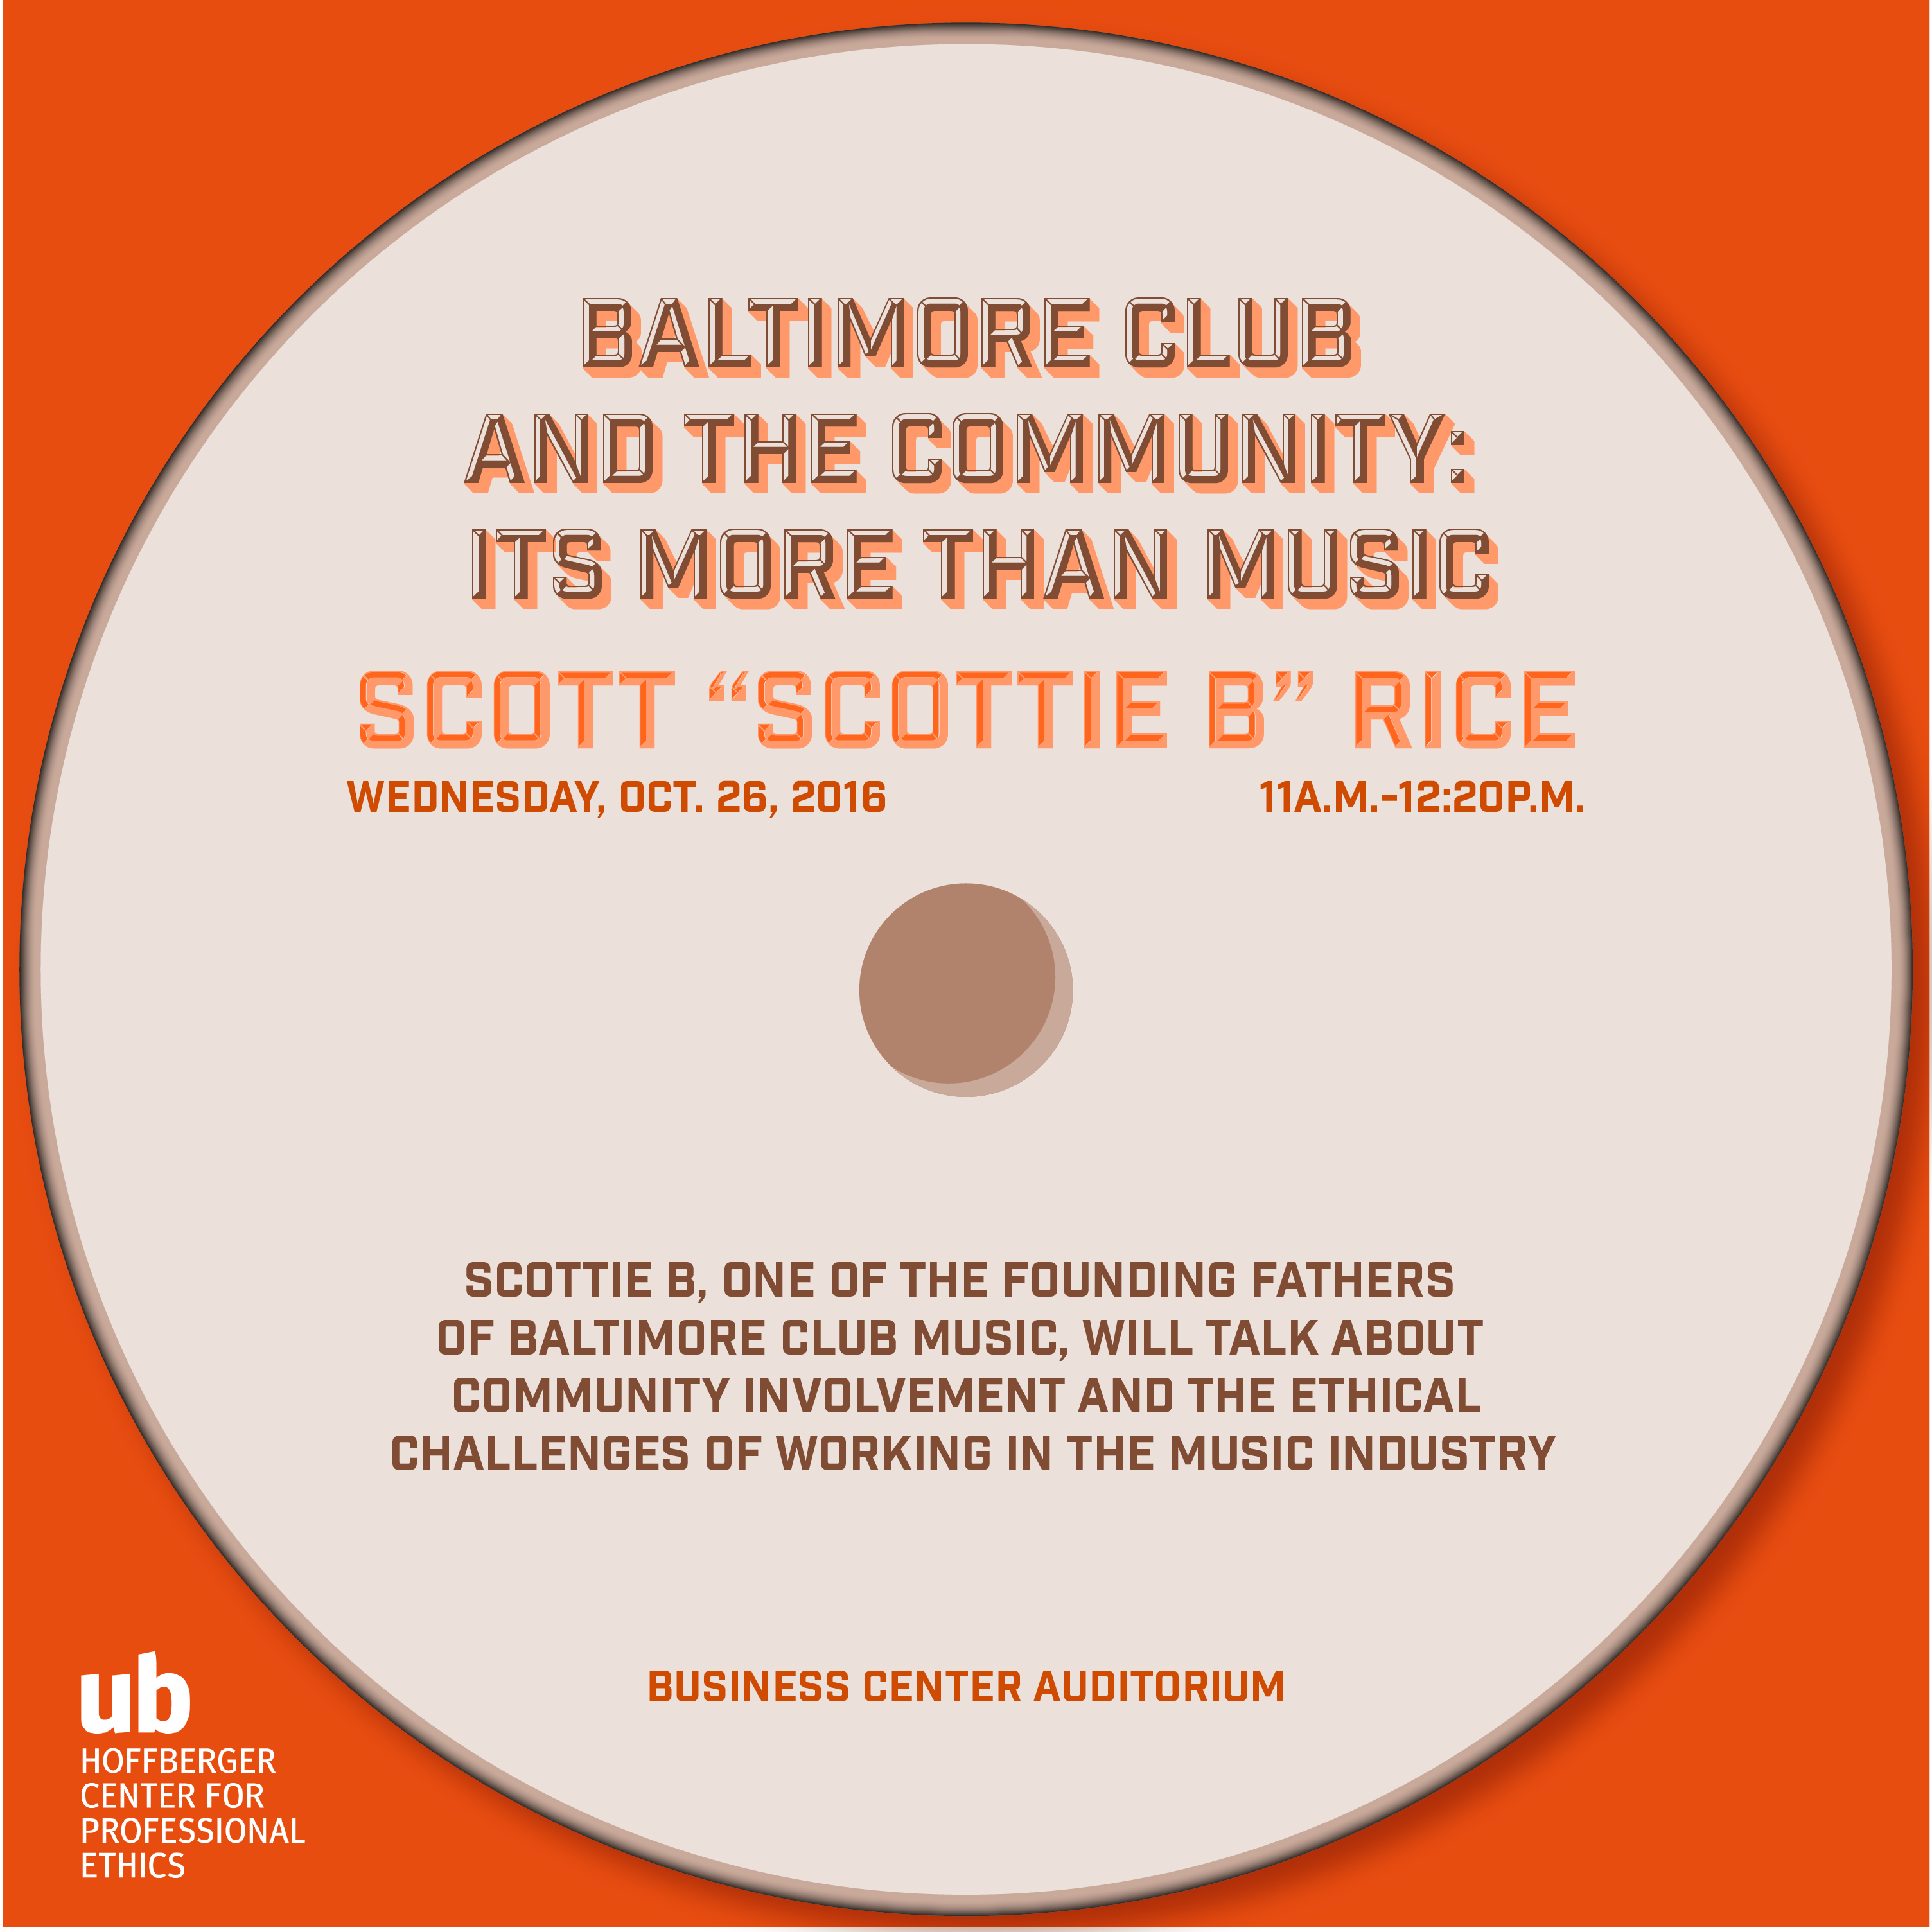 Baltimore Club and the Community